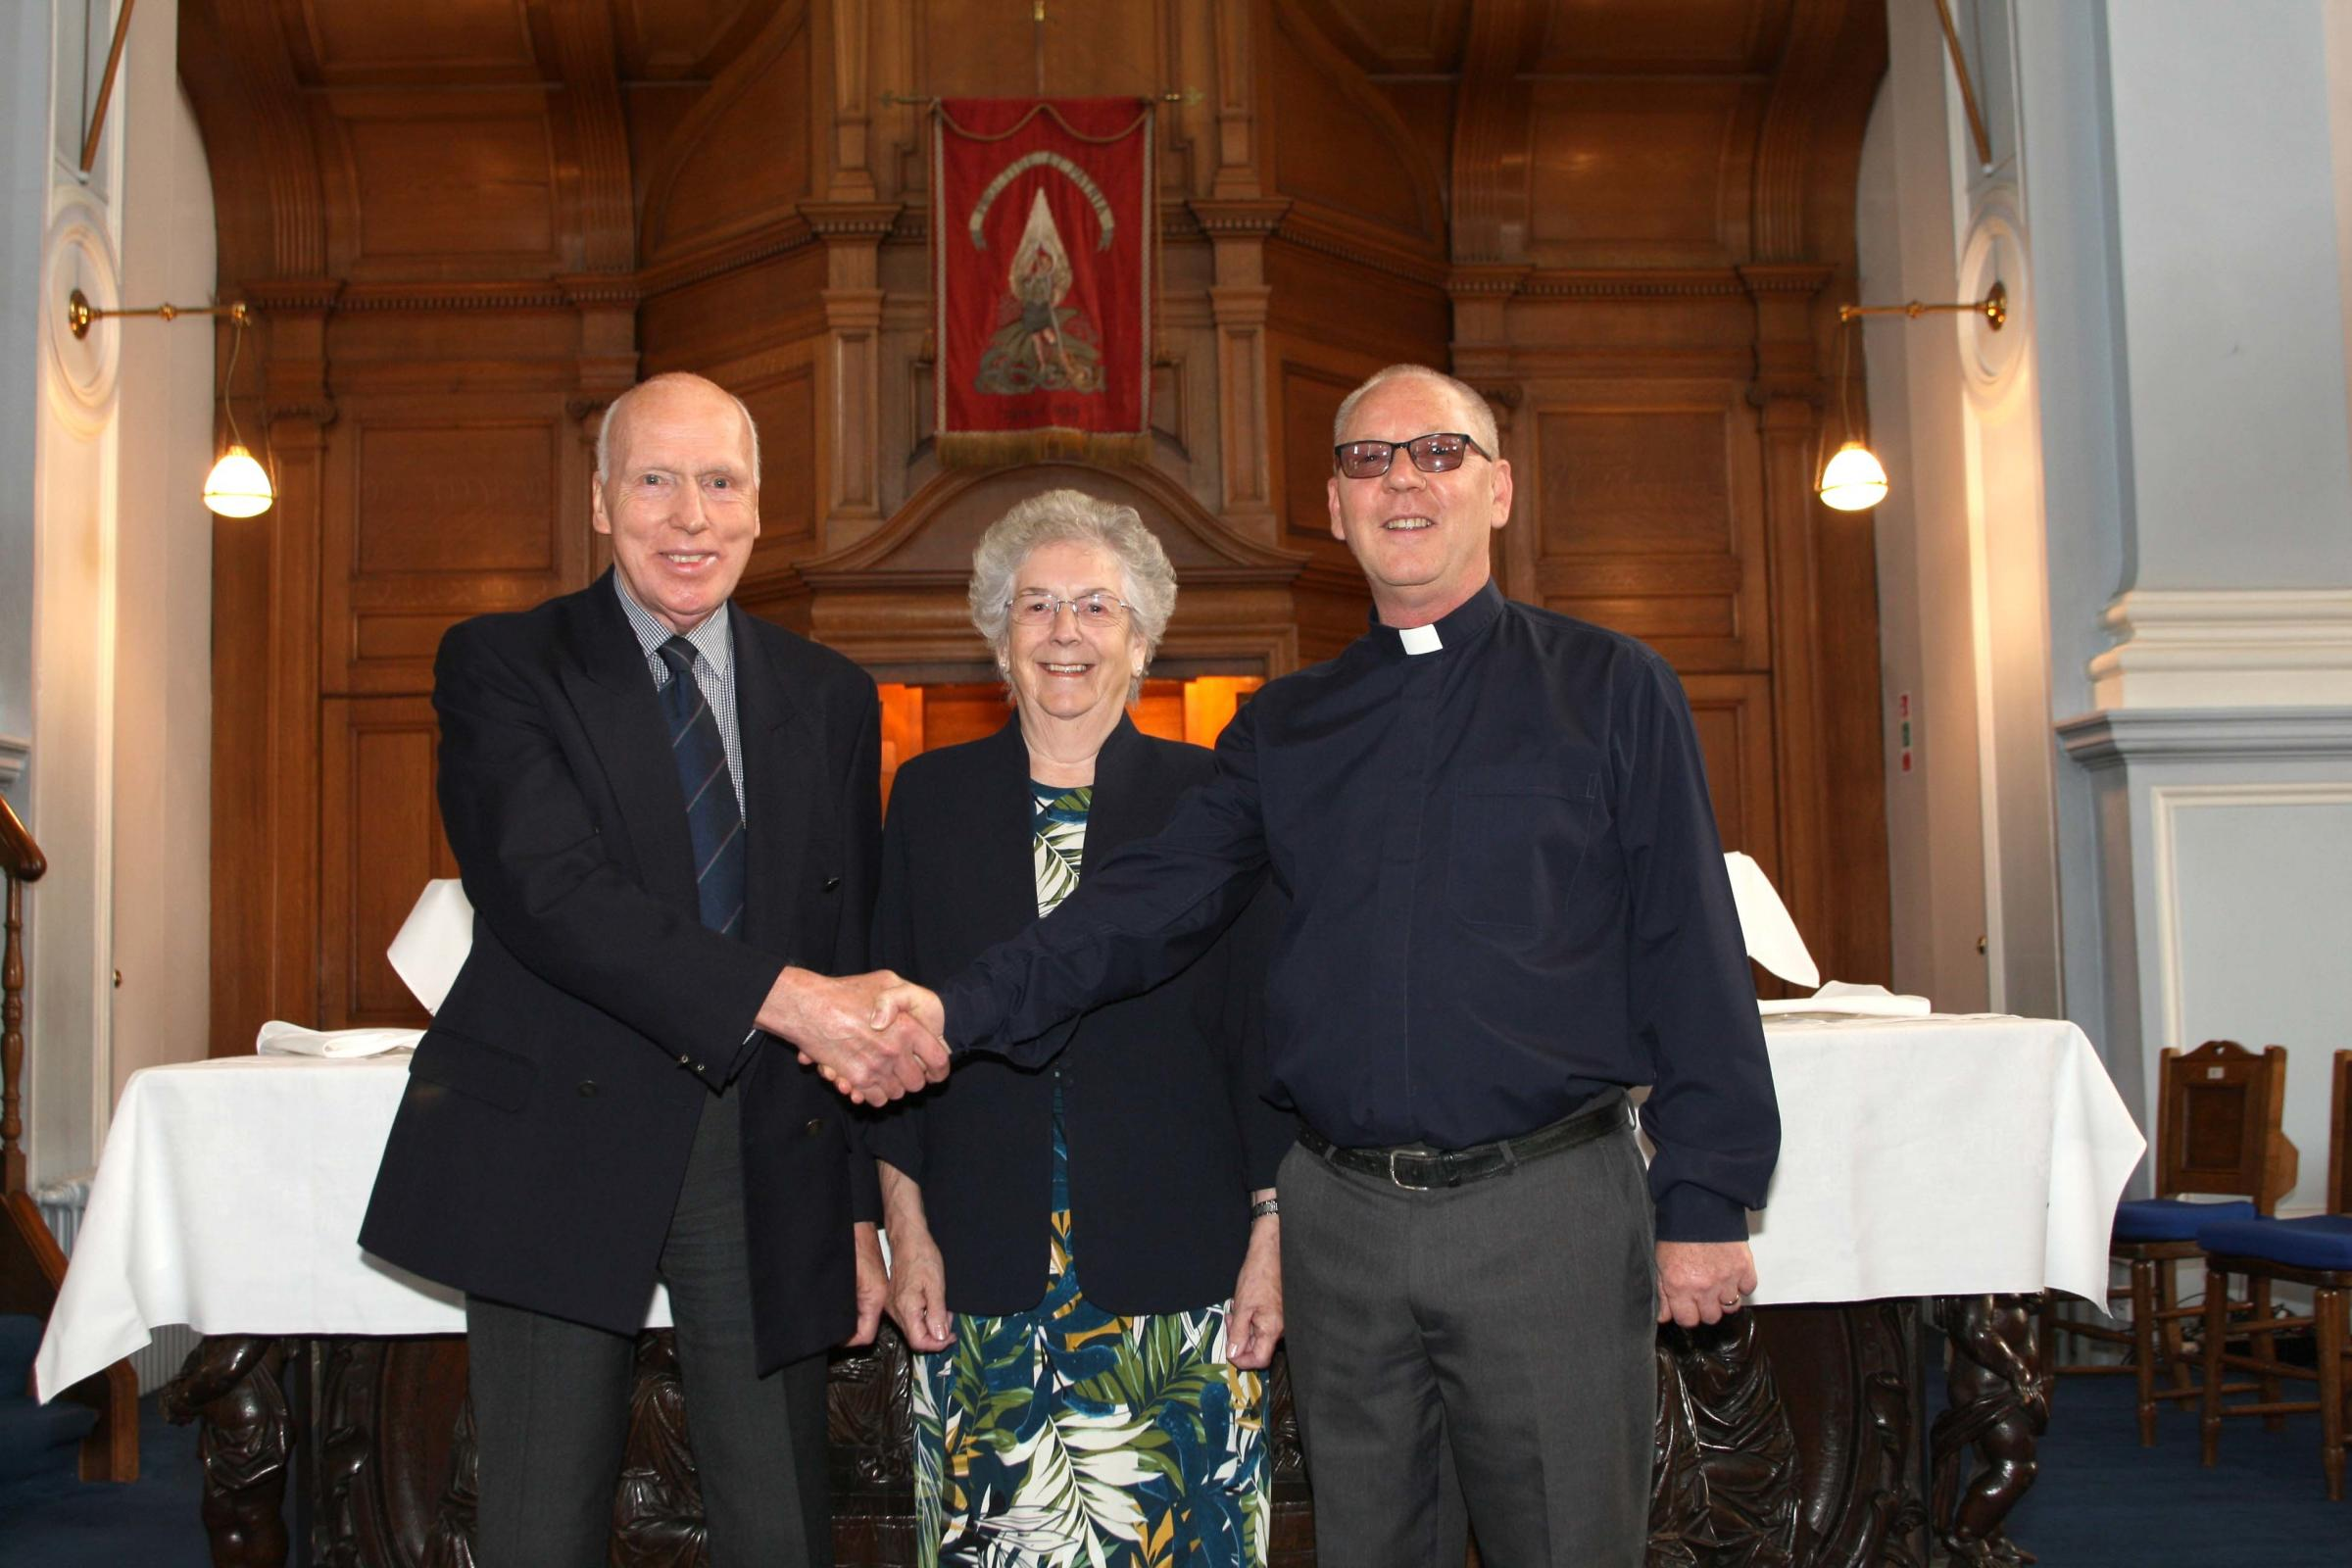 Church session clerk steps down after 12 years' service